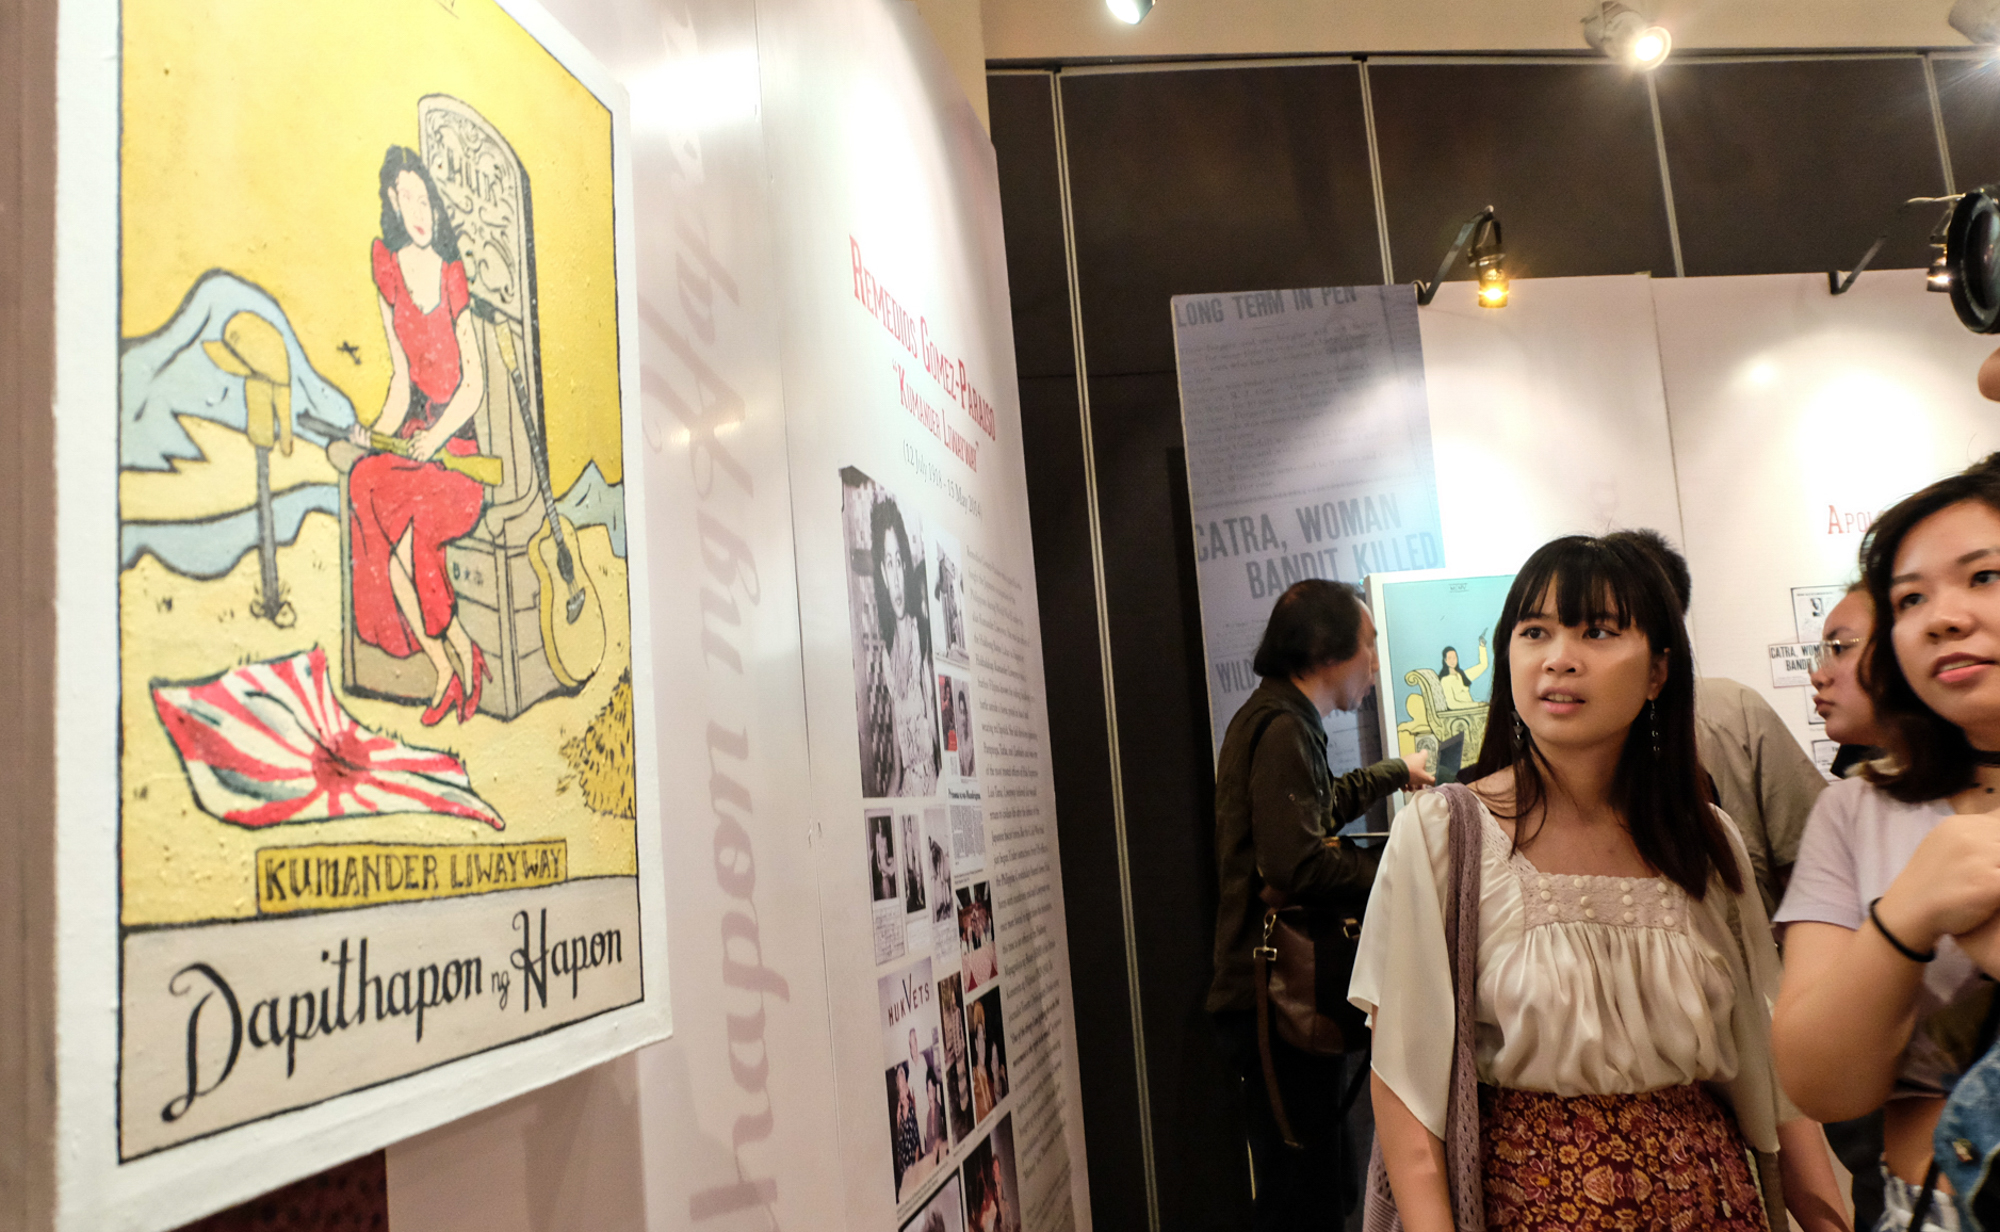 5 Filipina heroines lauded in new 'Alas ng Bayan' exhibit